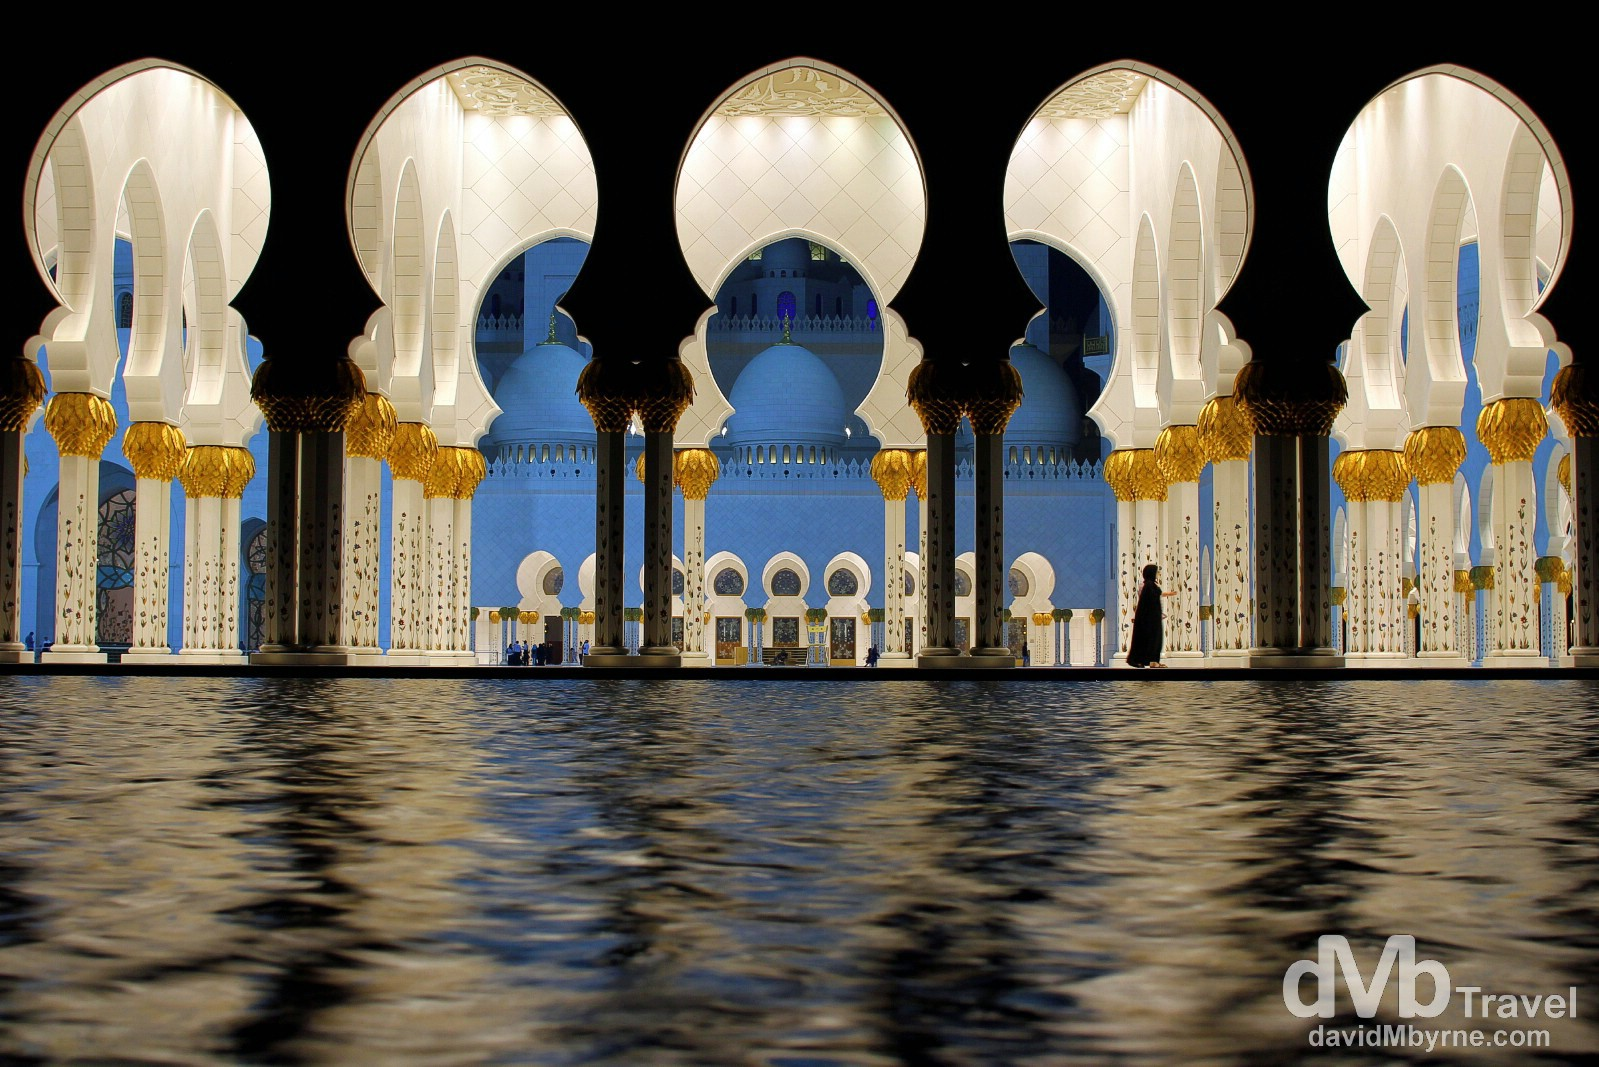 The Sheikh Zayed Grand Mosque, Abu Dhabi, UAE. April 22nd, 2014.